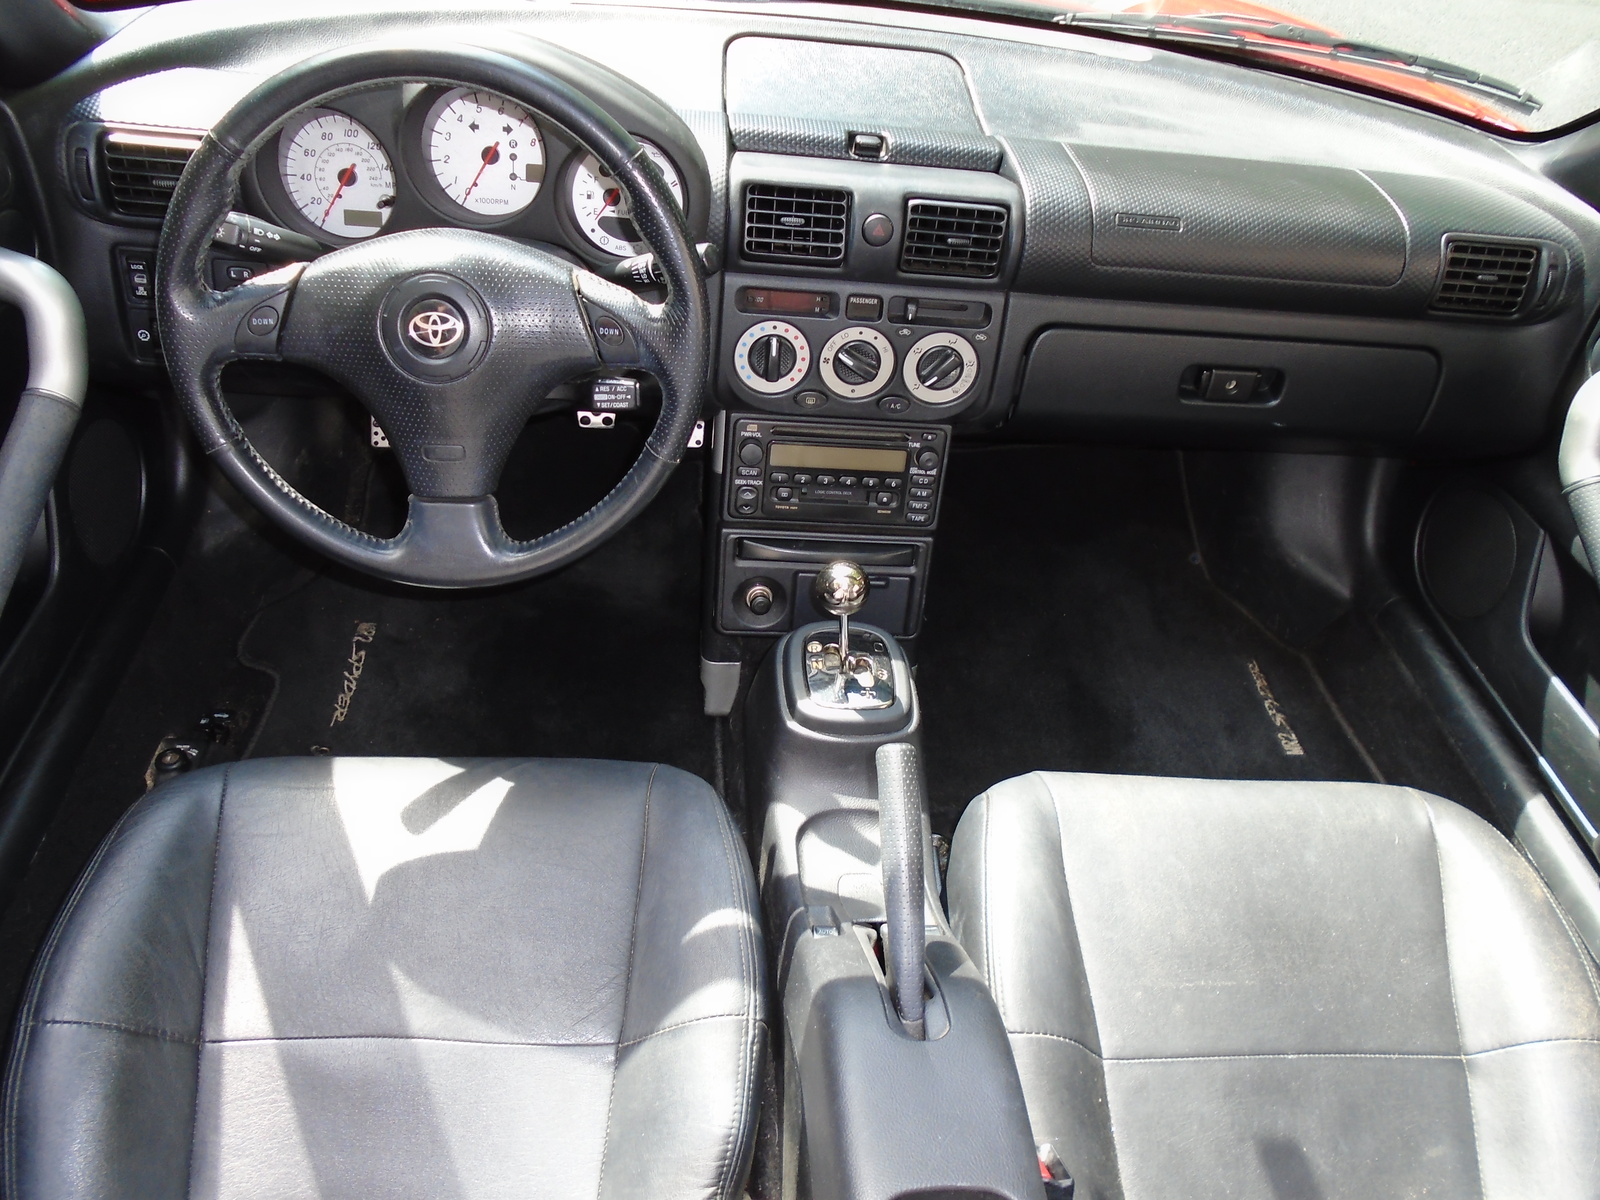 2002 toyota mr2 spyder interior pictures cargurus for Mr trim convertible tops and interiors